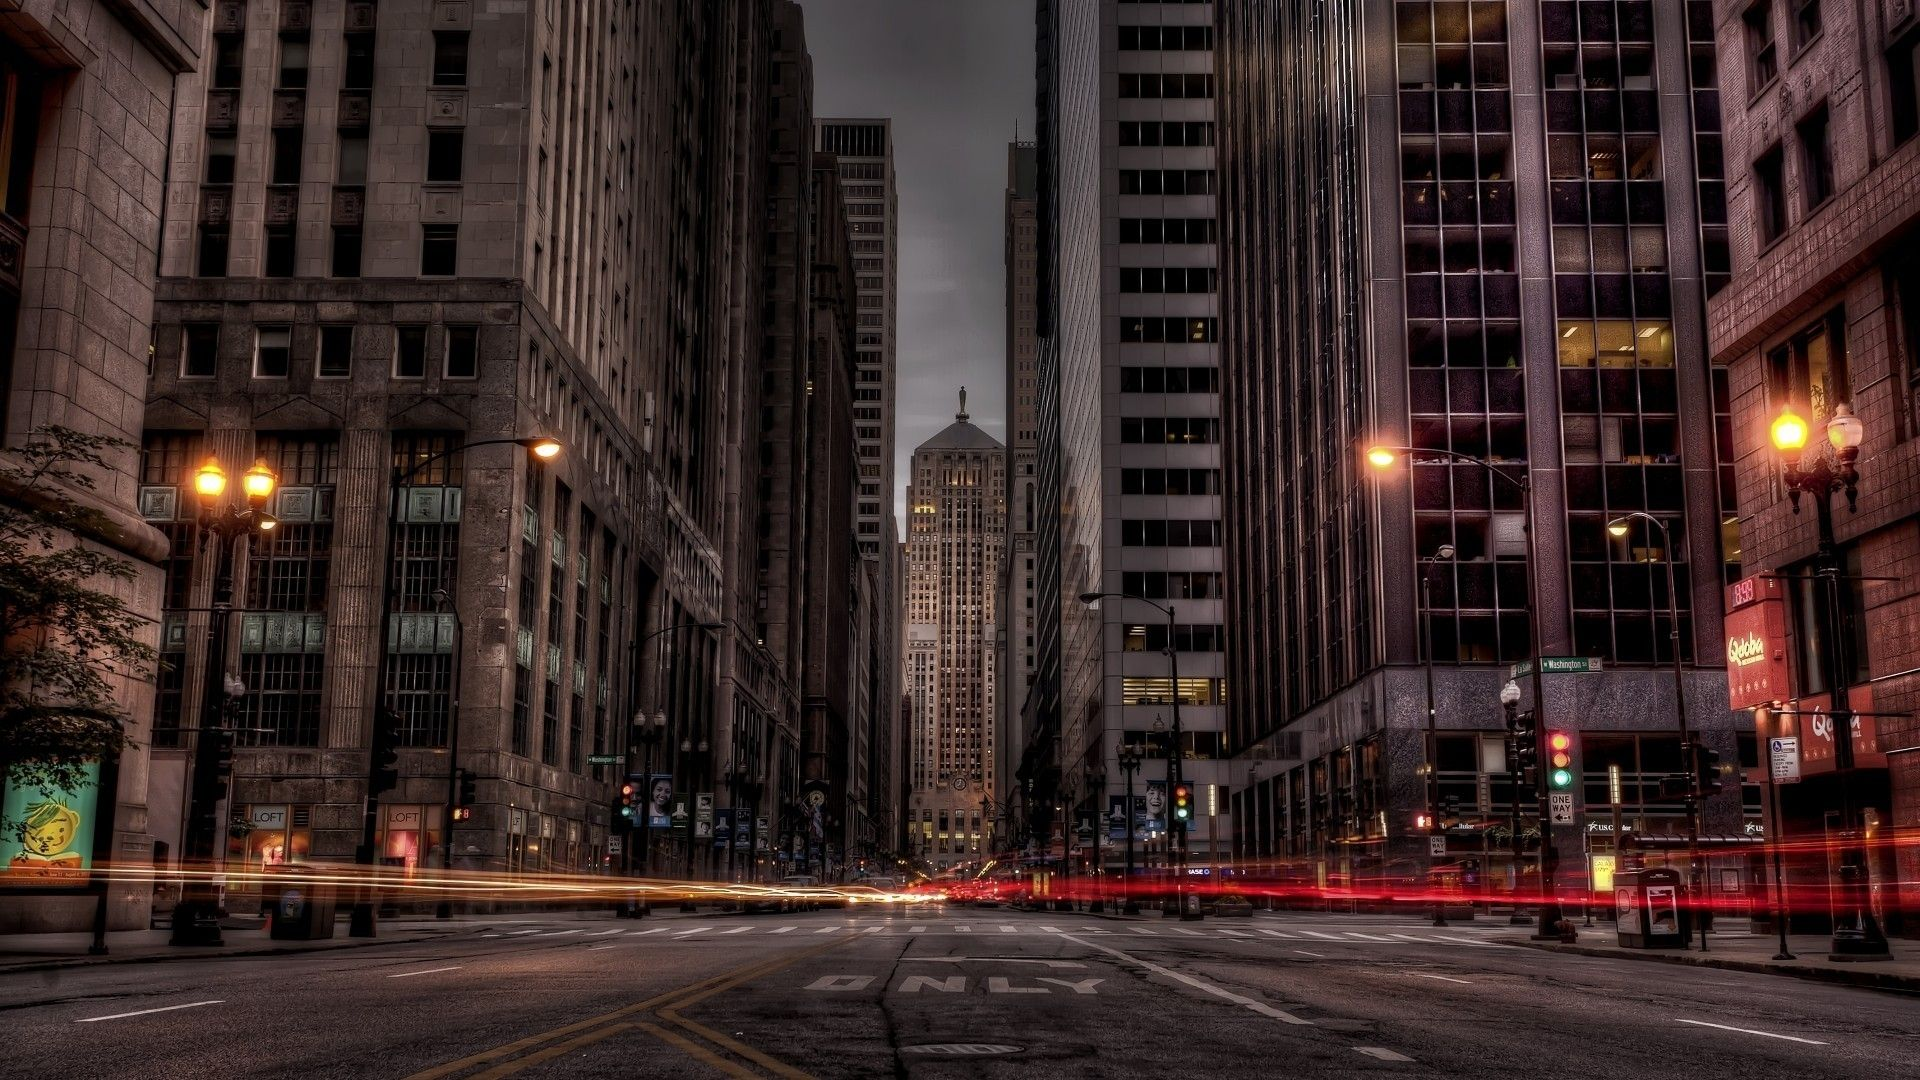 City Street Background Free Stock Photos Download Free City